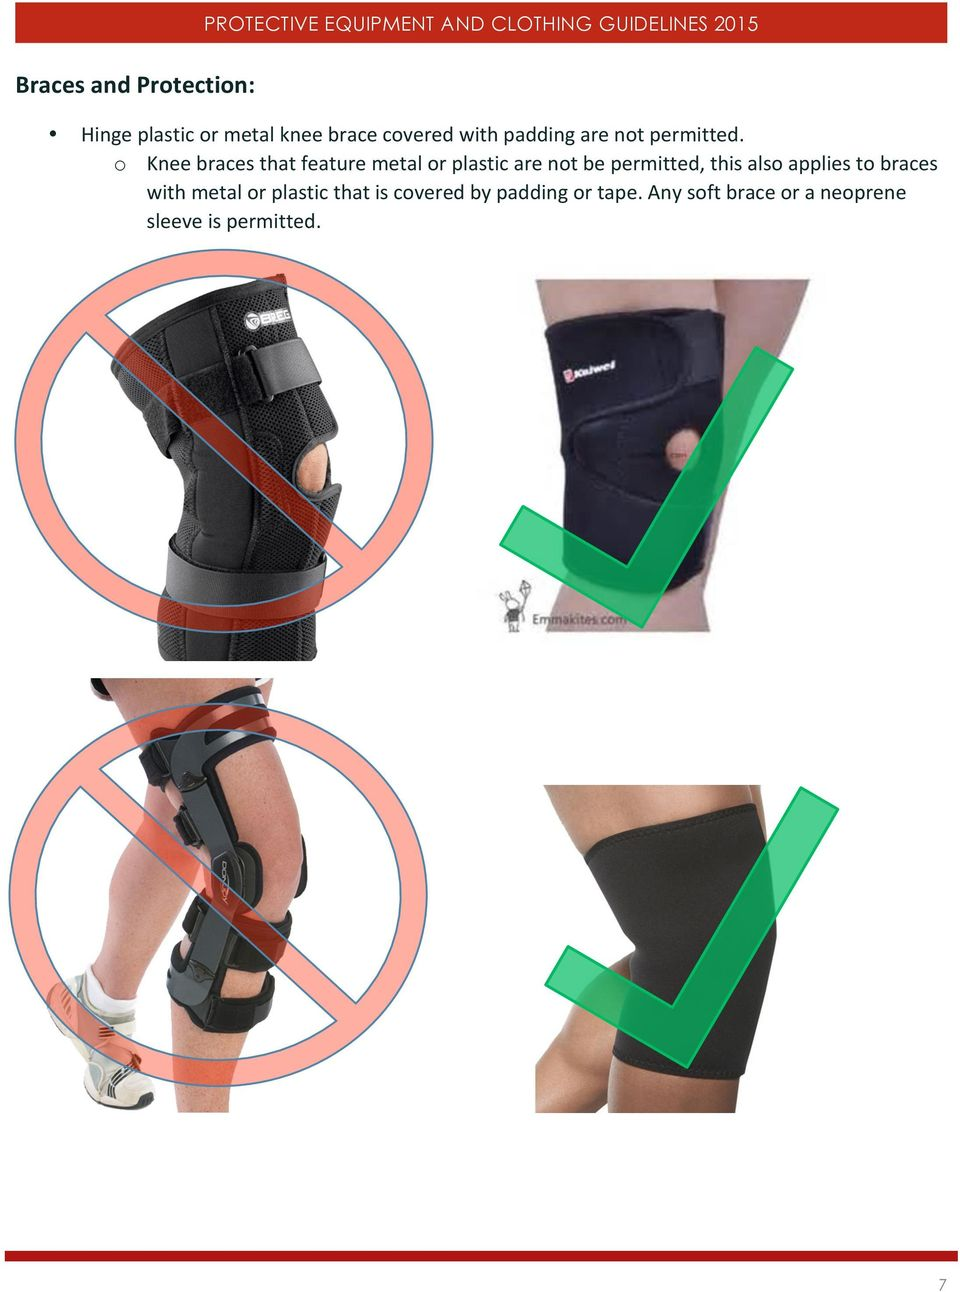 o Knee braces that feature metal or plastic are not be permitted, this